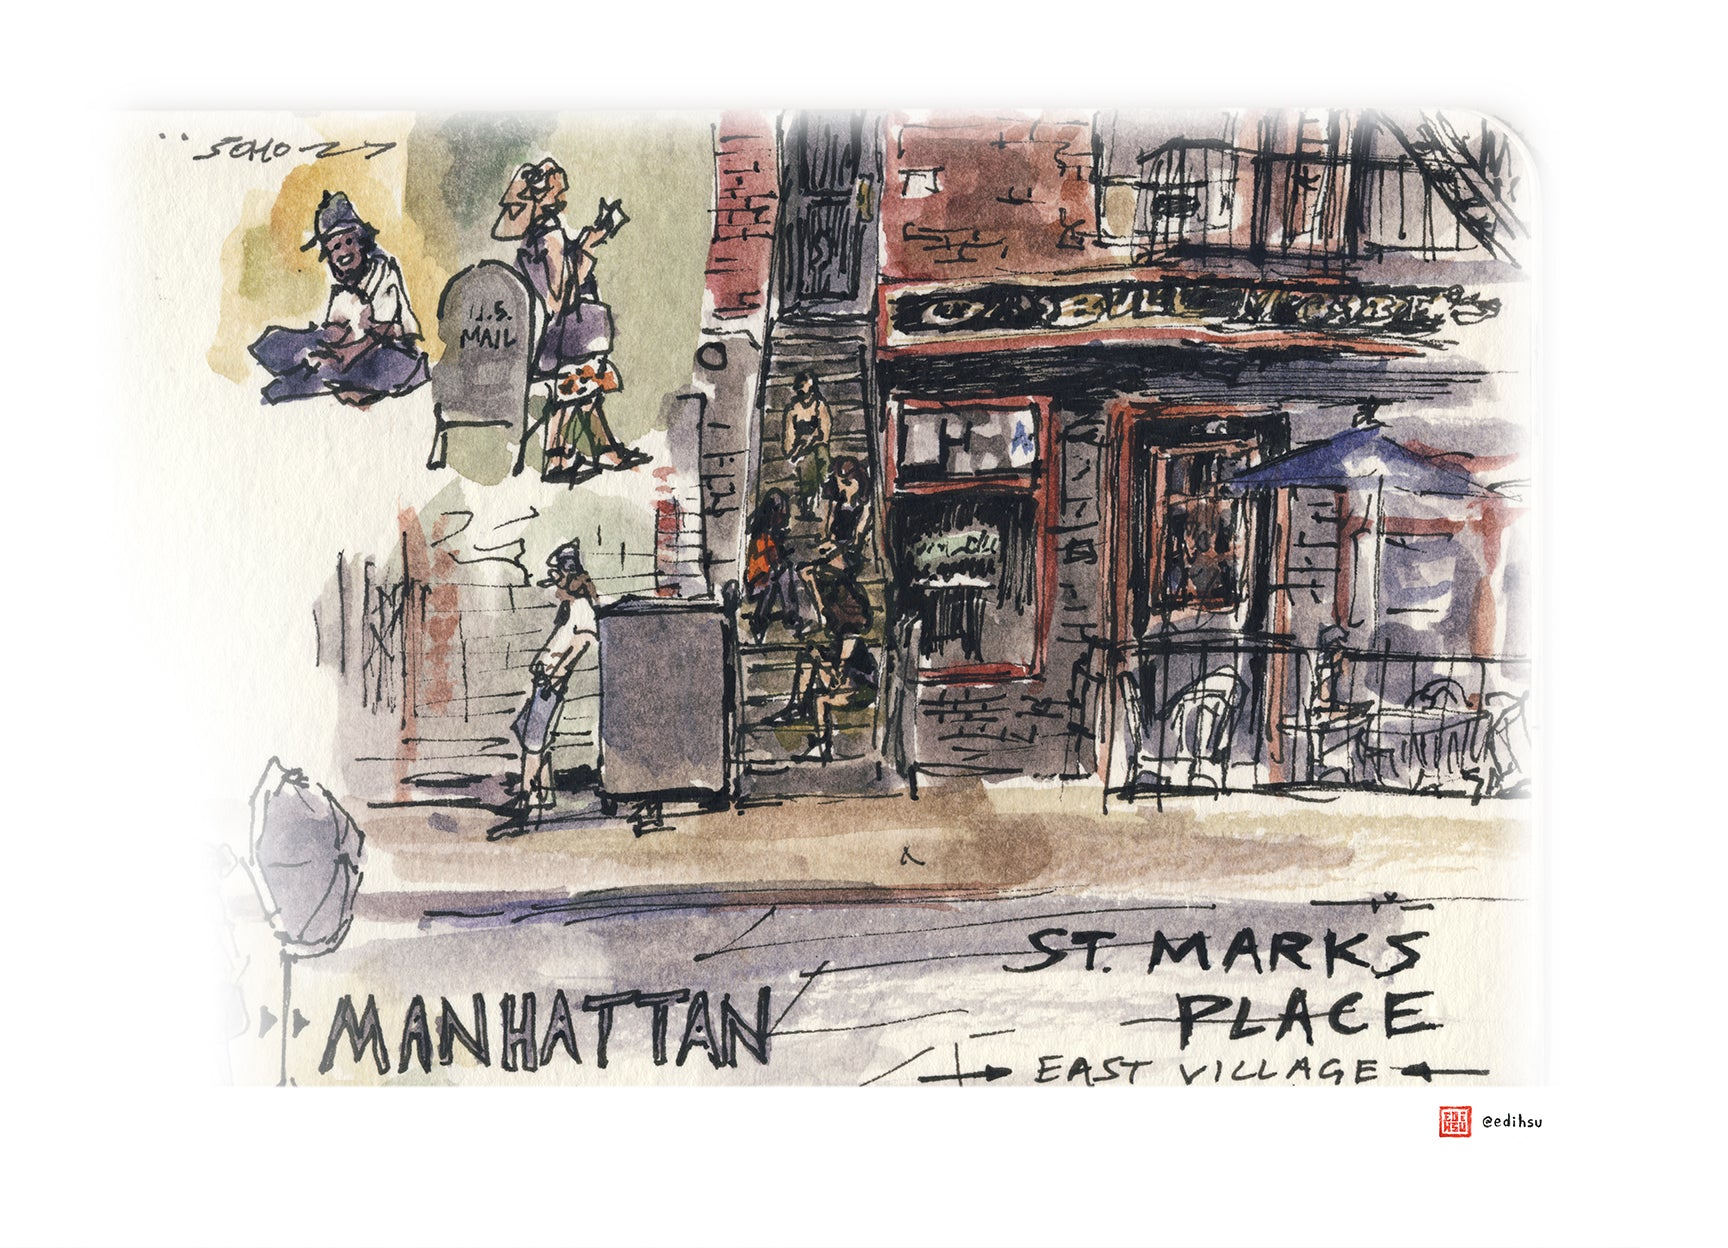 St Mark's Place - Manhattan, NYC - Watercolor by Edi Hsu